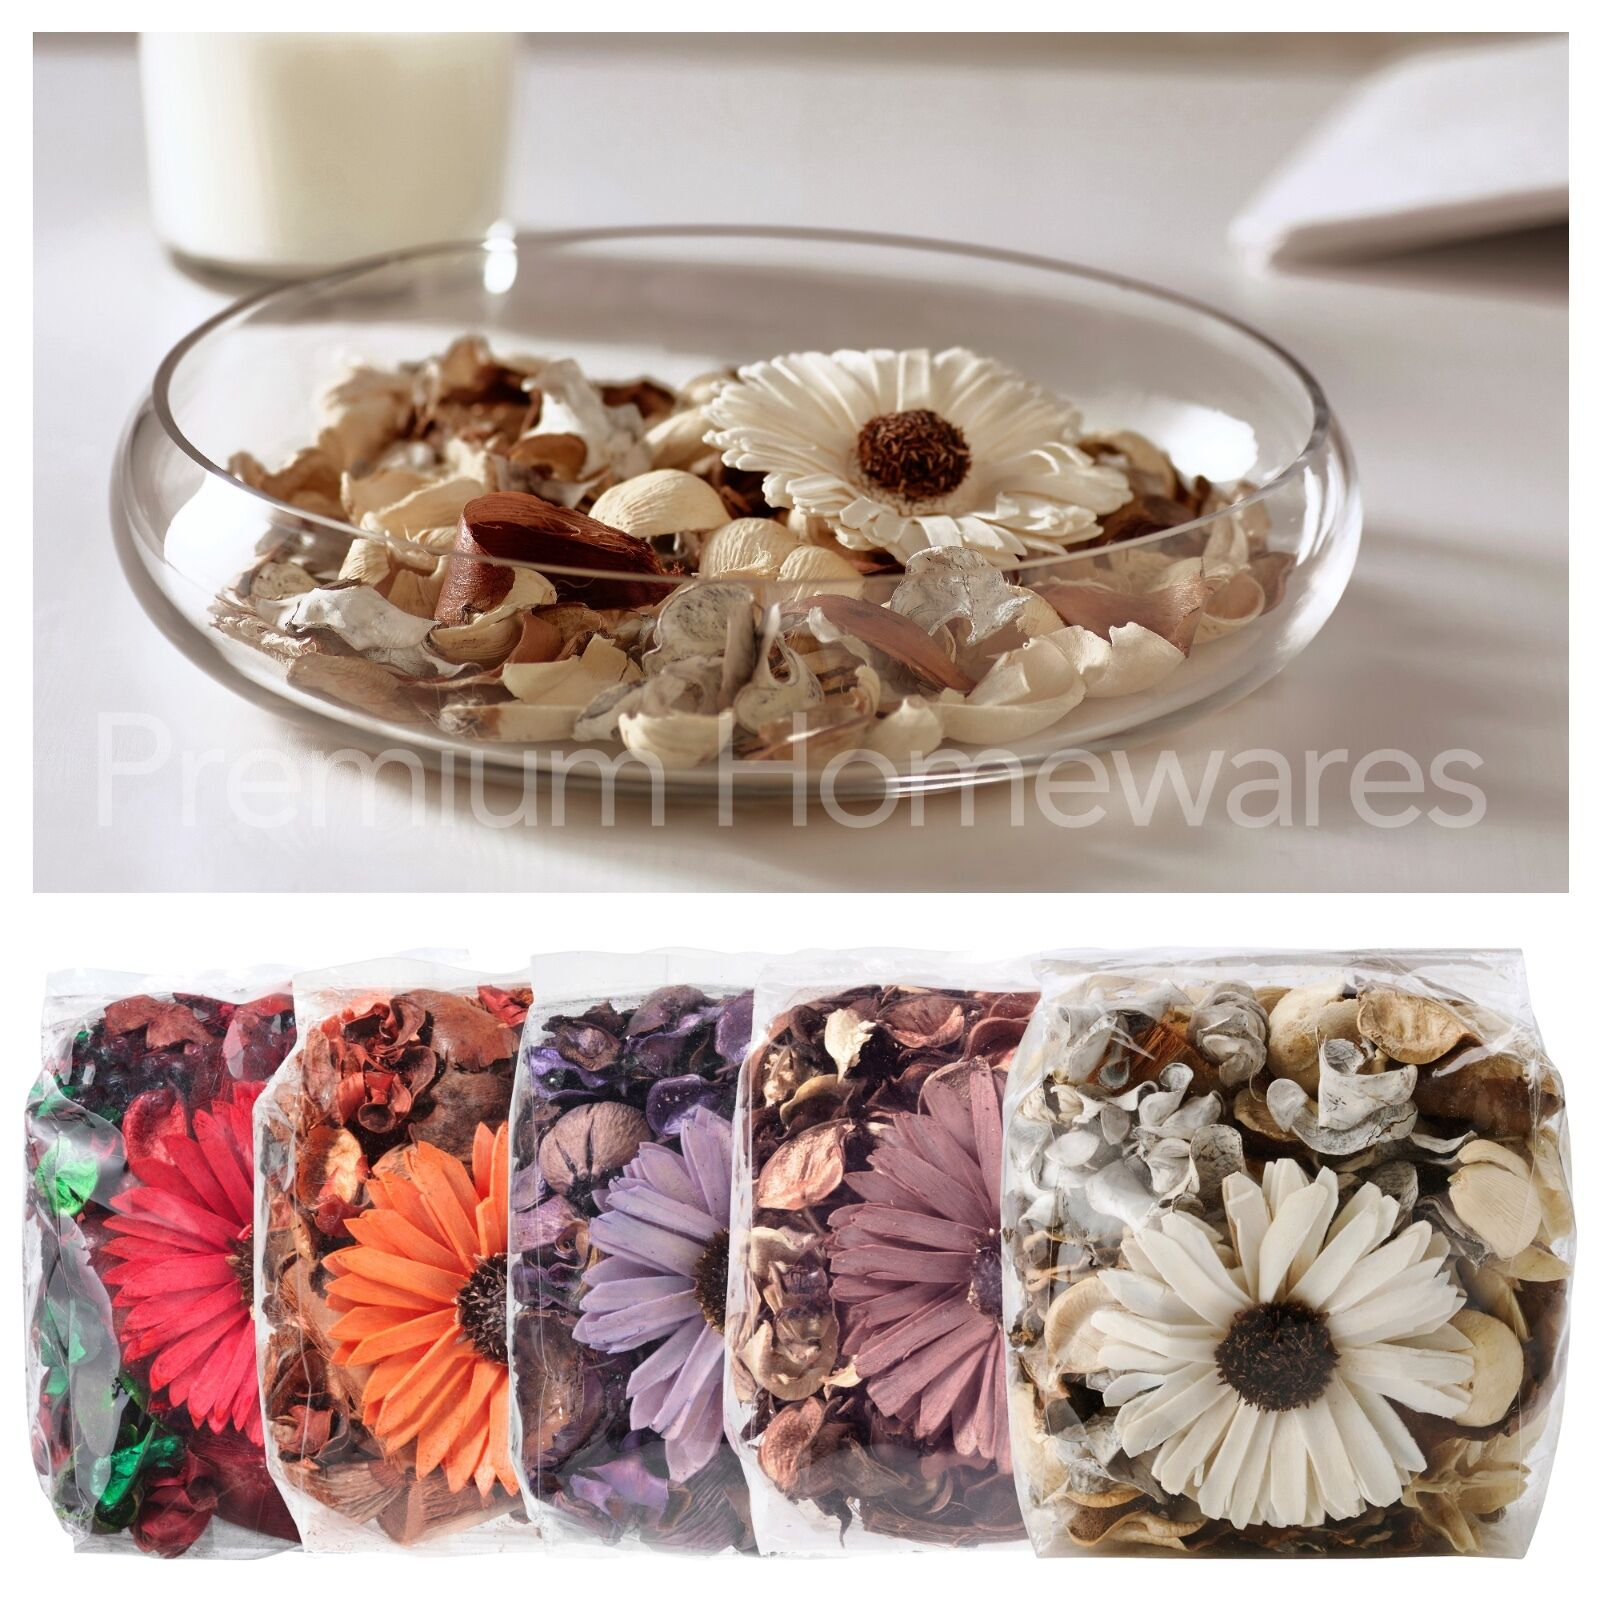 bag of ikea dofta scented potpourri with flower brown orange white lilac red ebay. Black Bedroom Furniture Sets. Home Design Ideas